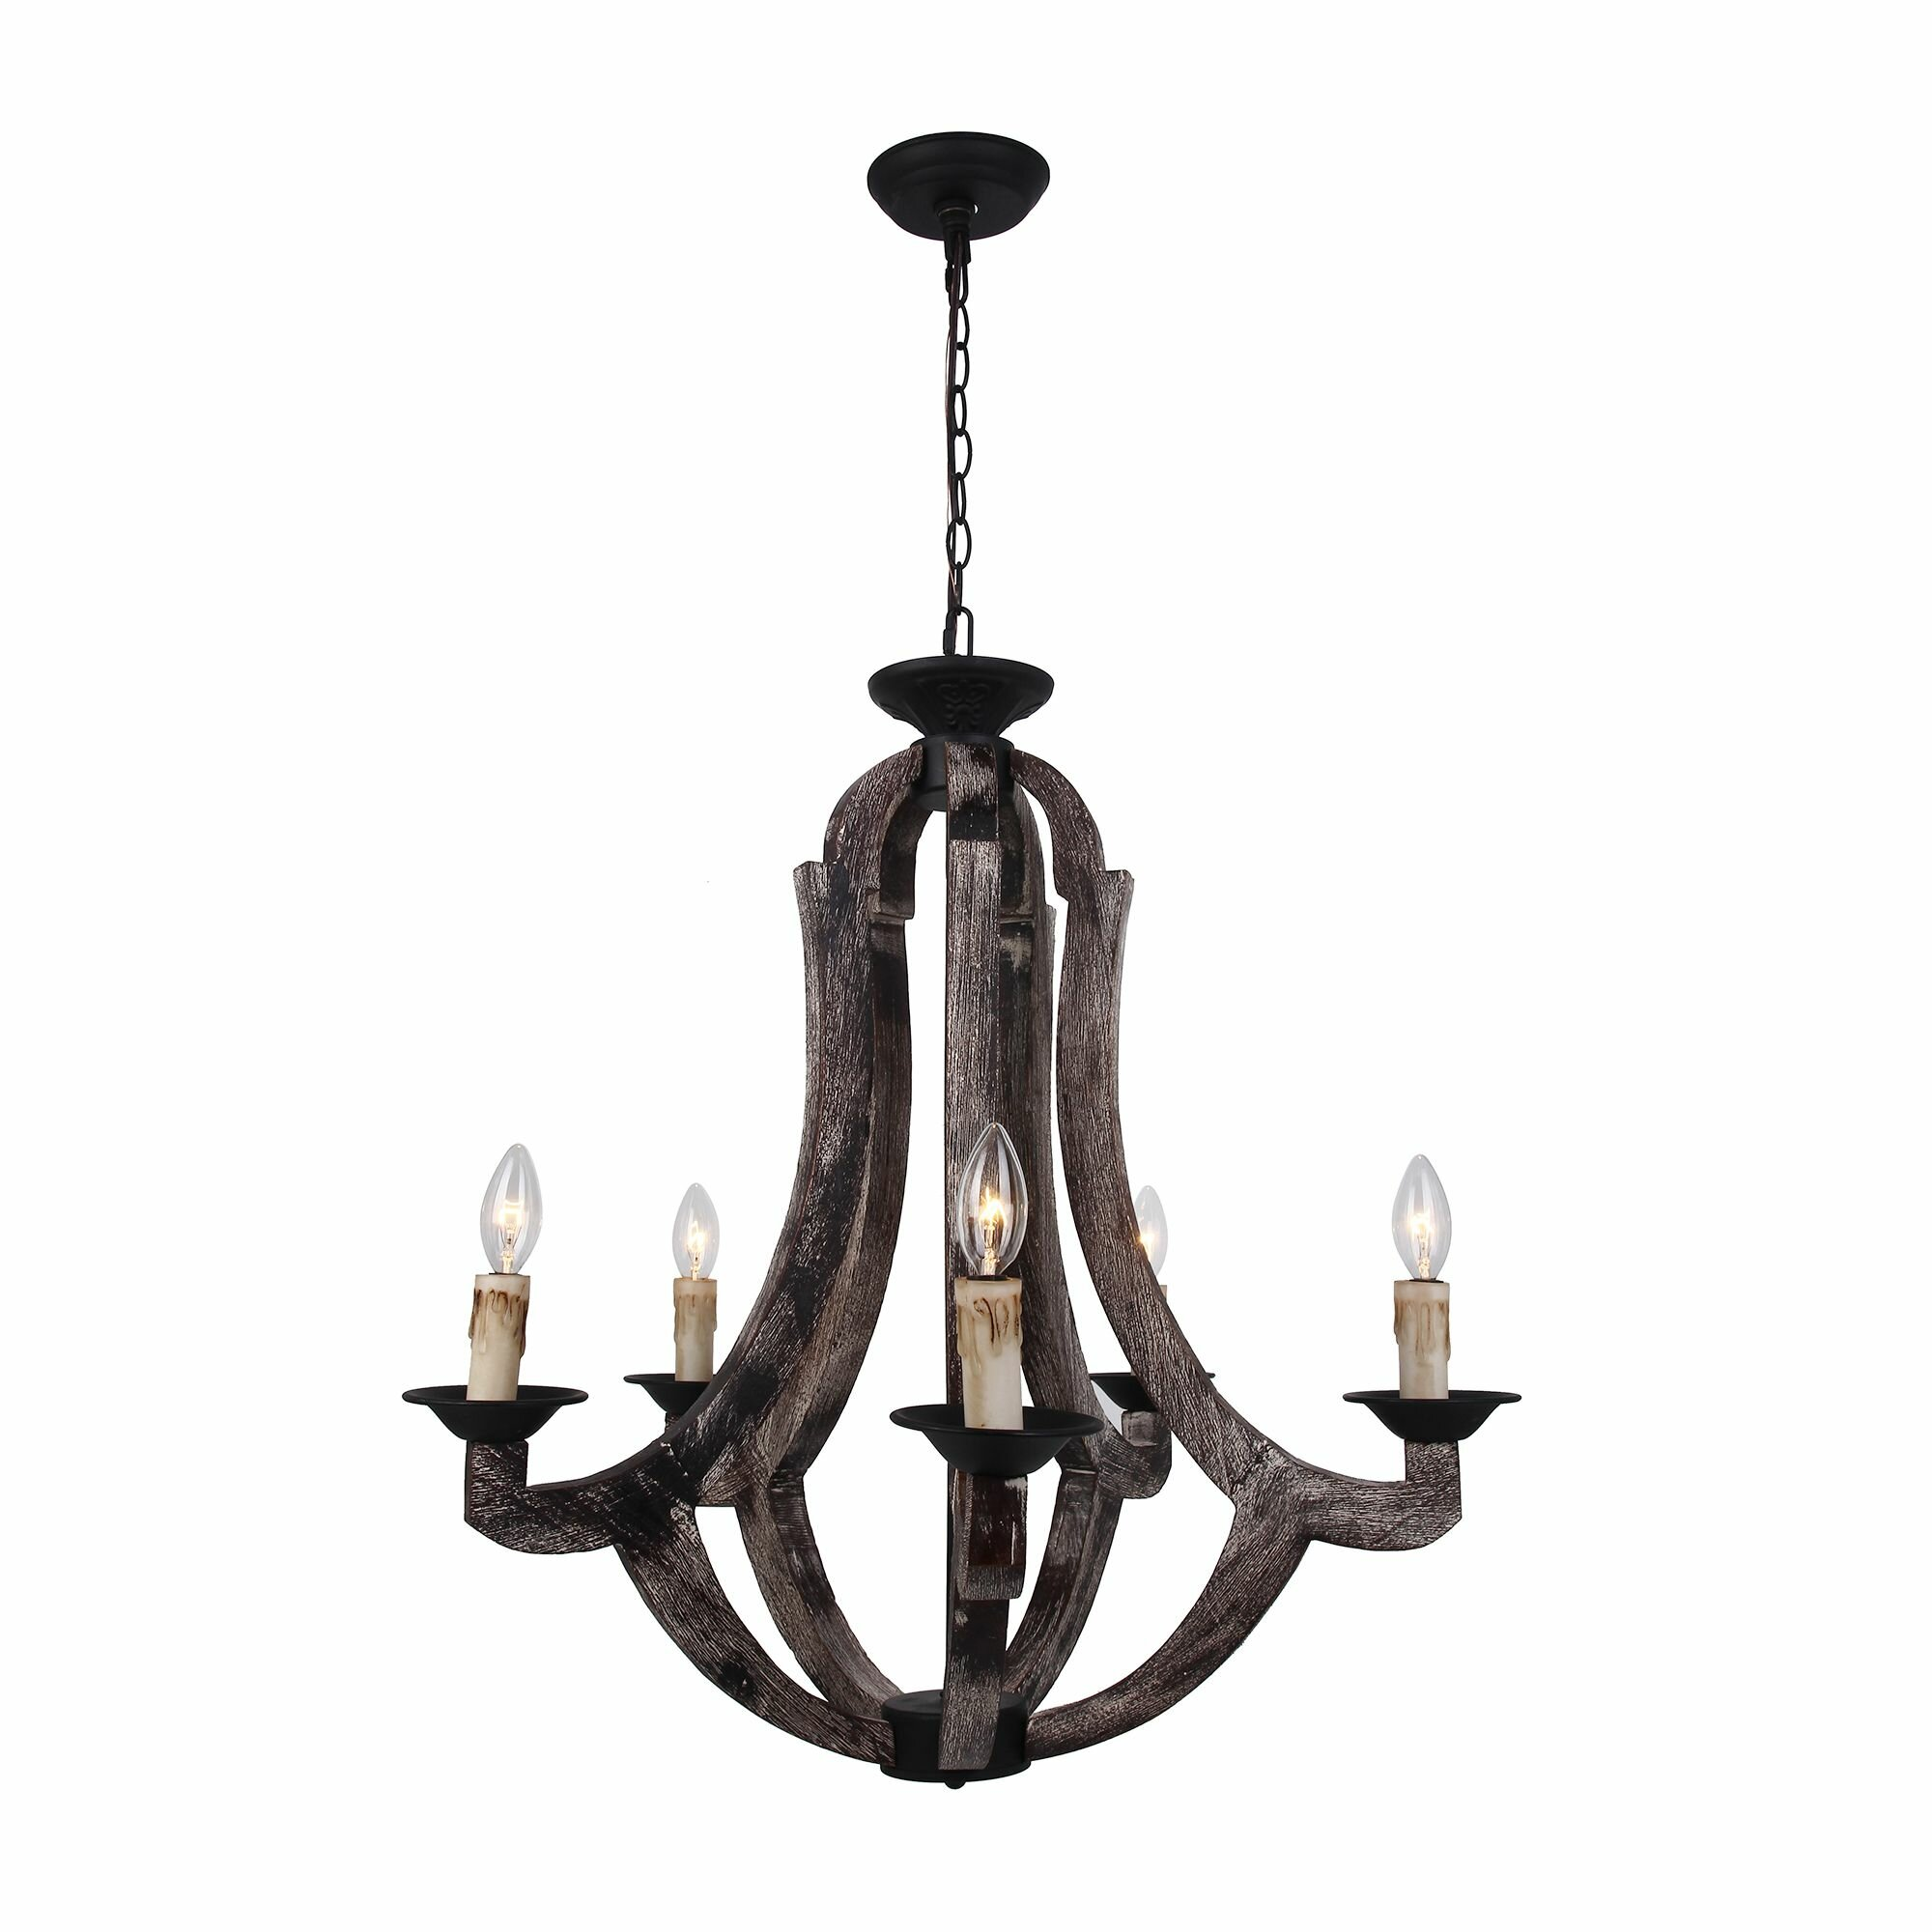 Ophelia & Co Esperanza 5 Light Candle Style Chandelier & Reviews